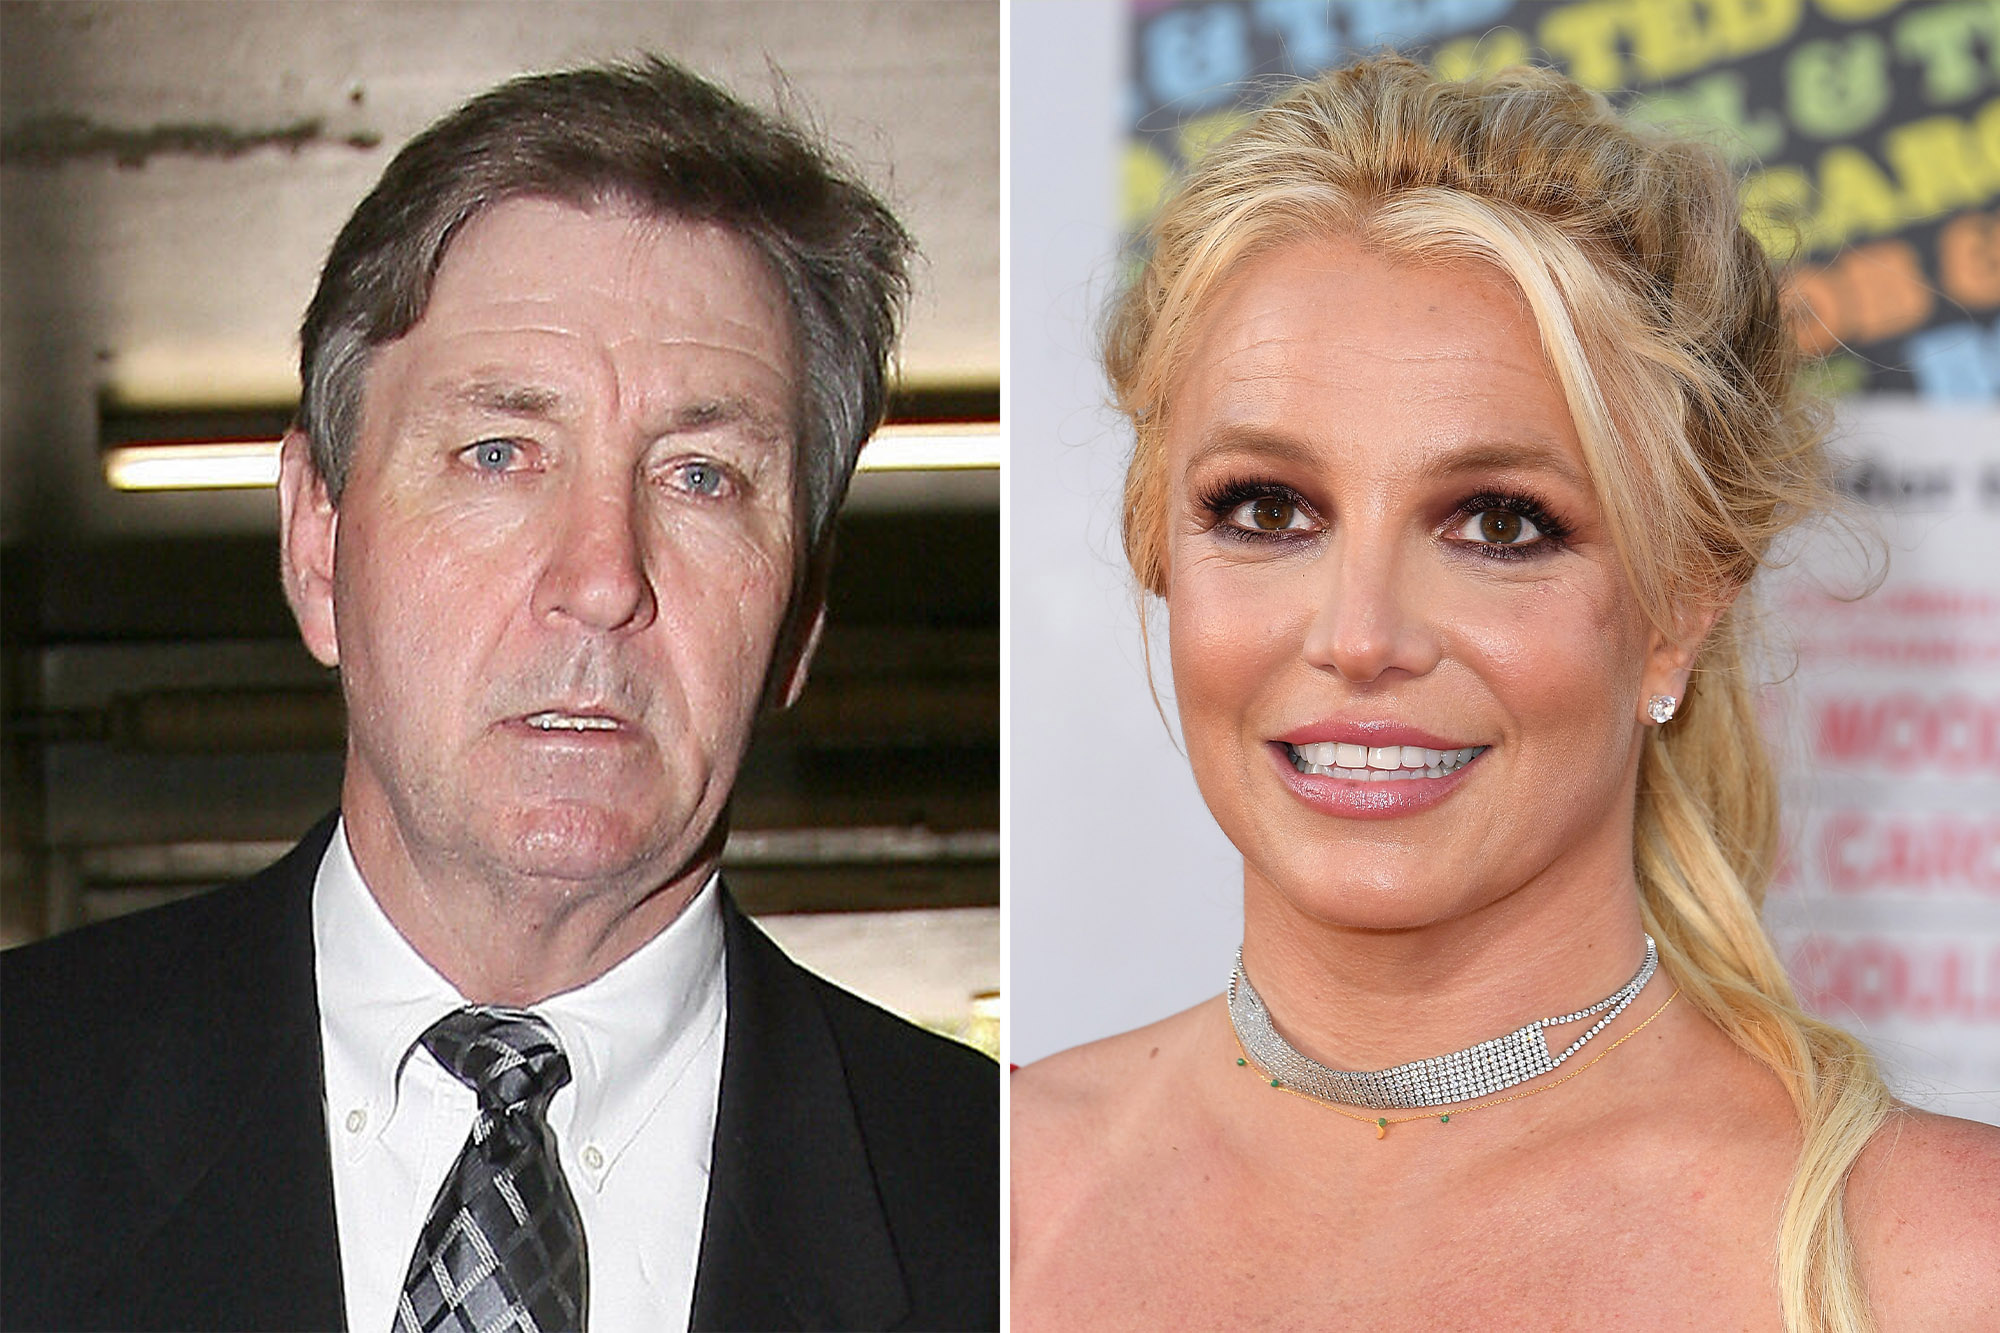 """""""britney-spears-finally-speaks-up-publicly-about-her-fathers-conservatorship-says-he-loves-having-control-over-her-compares-him-to-a-human-trafficker-and-more"""""""